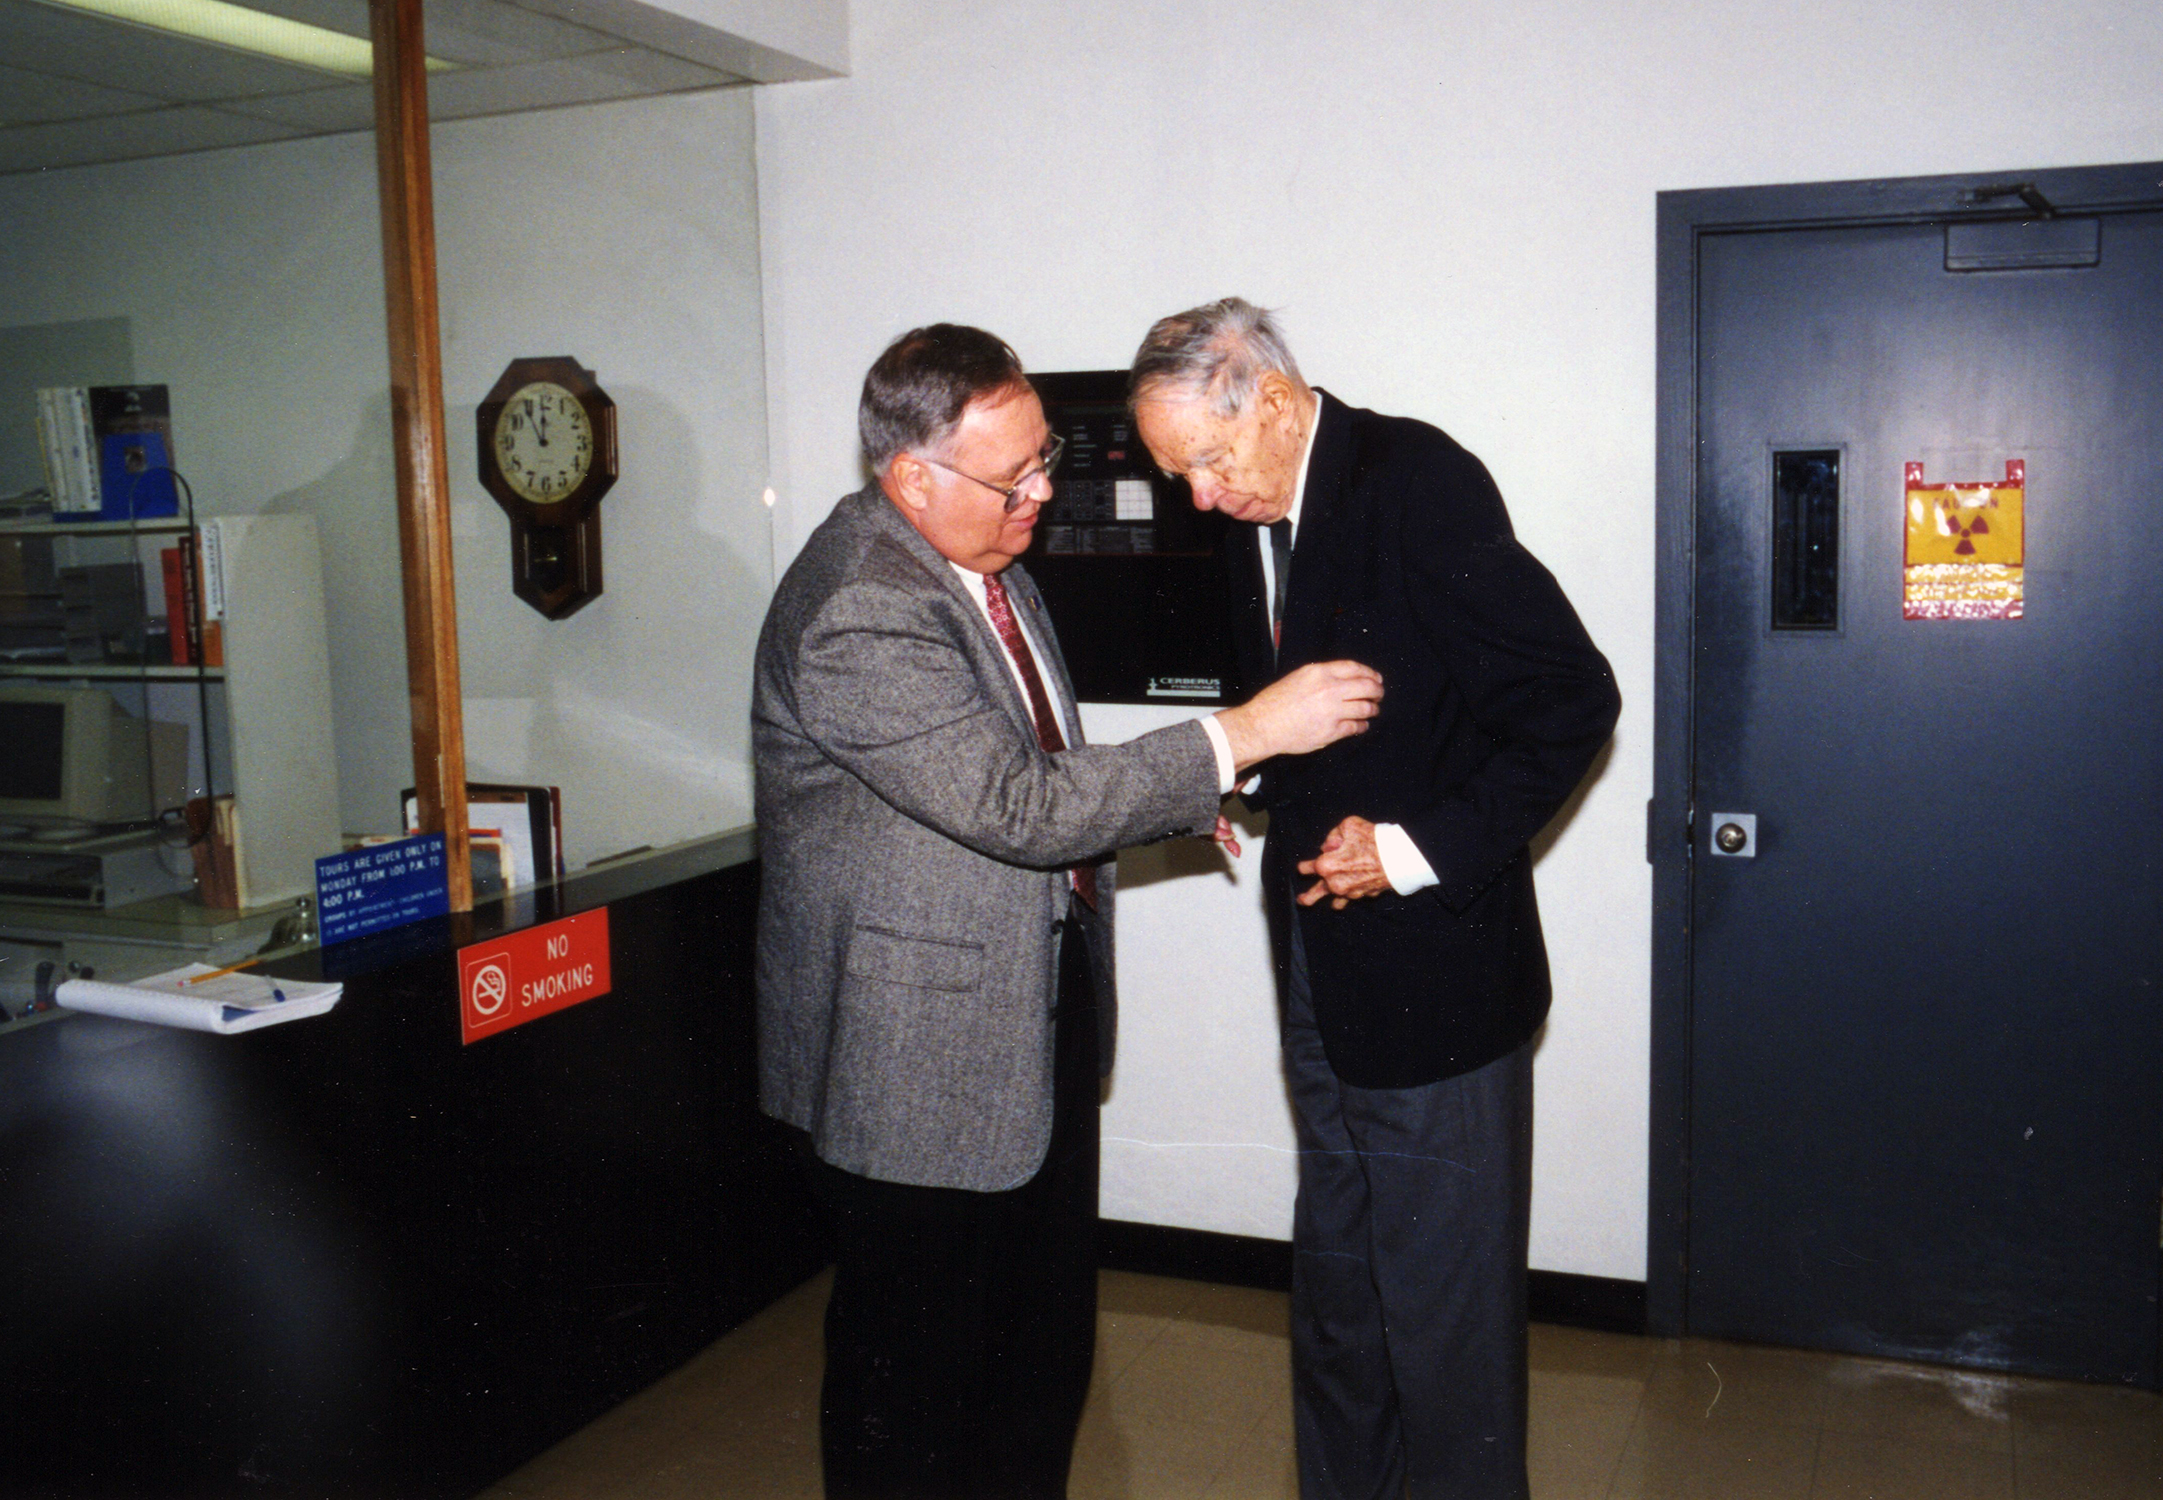 Texas A&M Distinguished Professor of Chemistry and Former Cyclotron Institute Director Joseph B. Natowitz helps 1951 Nobel Prize in Chemistry recipient Glenn T. Seaborg affix his dosimeter prior to embarking on a Cyclotron Institute tour during his March 1998 visit to Texas A&M University